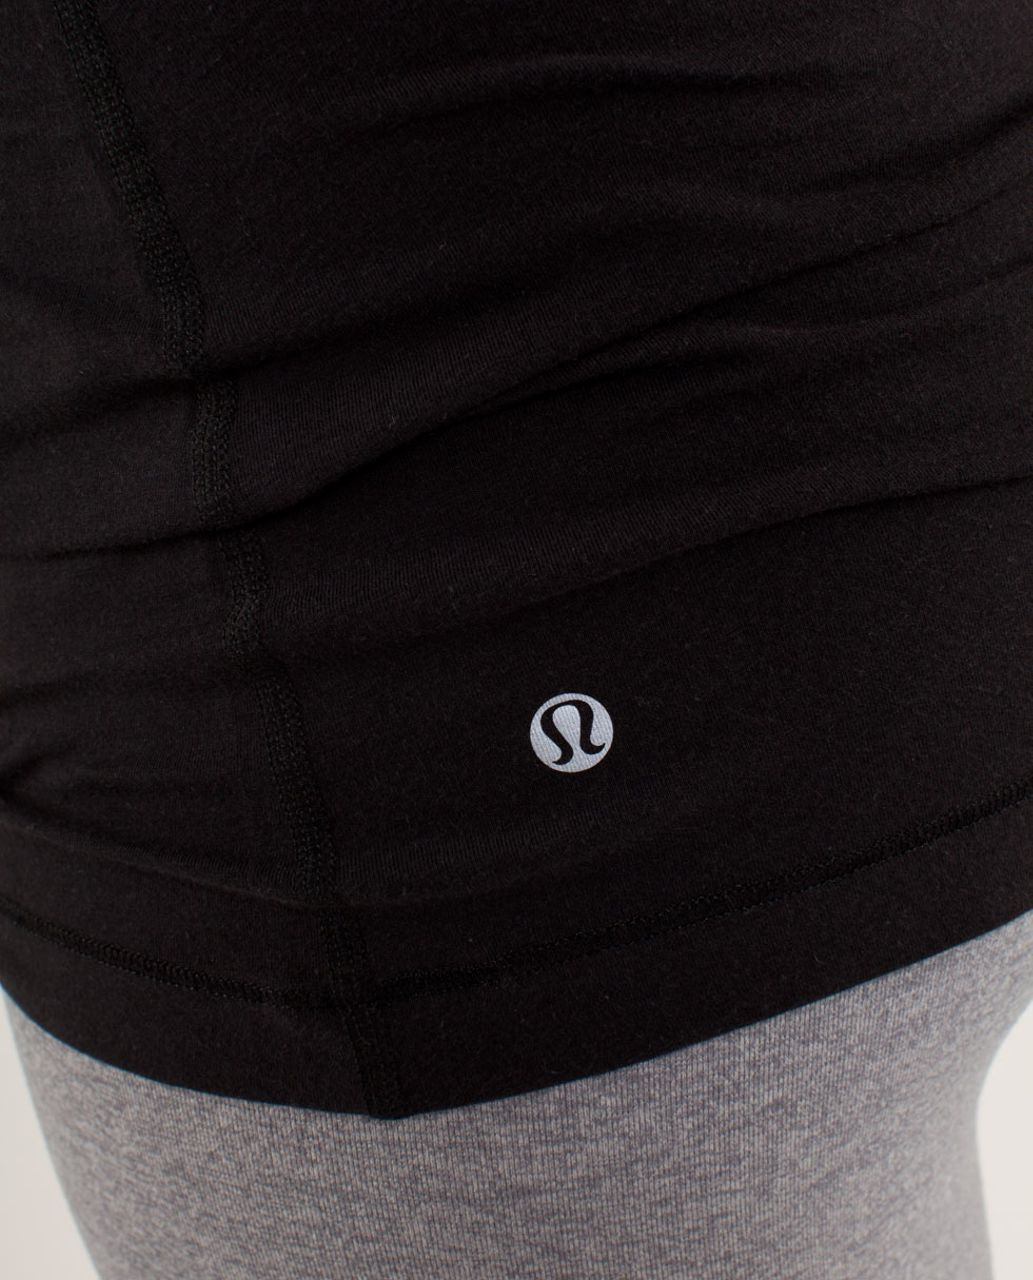 Lululemon Devotion Long Sleeve Tee - Black